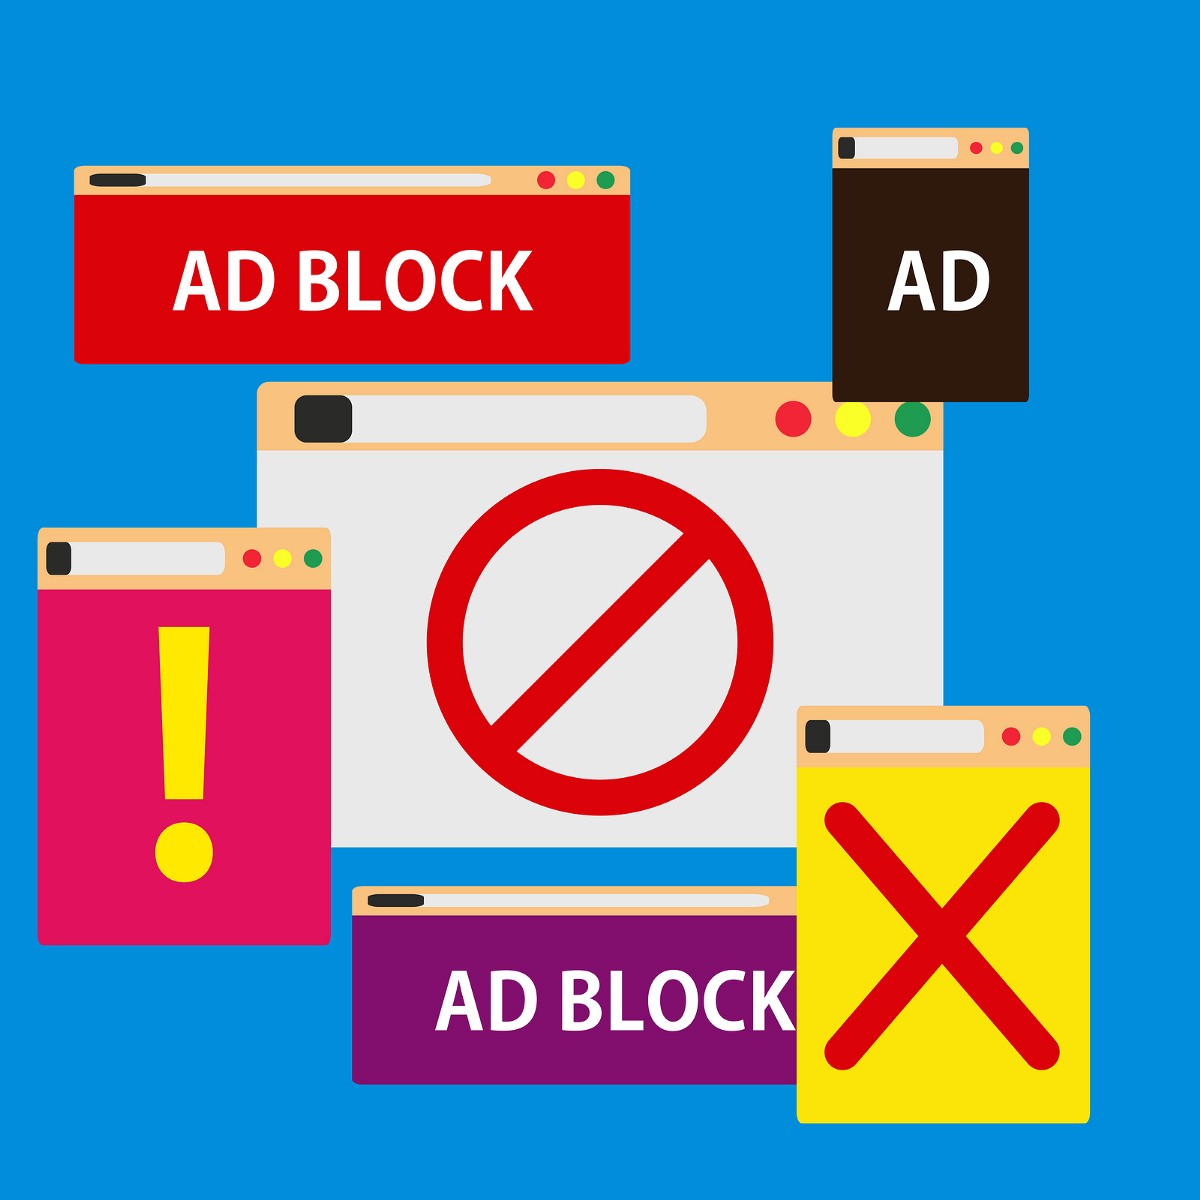 /the-evolution-of-online-advertisement-blockers-1518481154f6 feature image